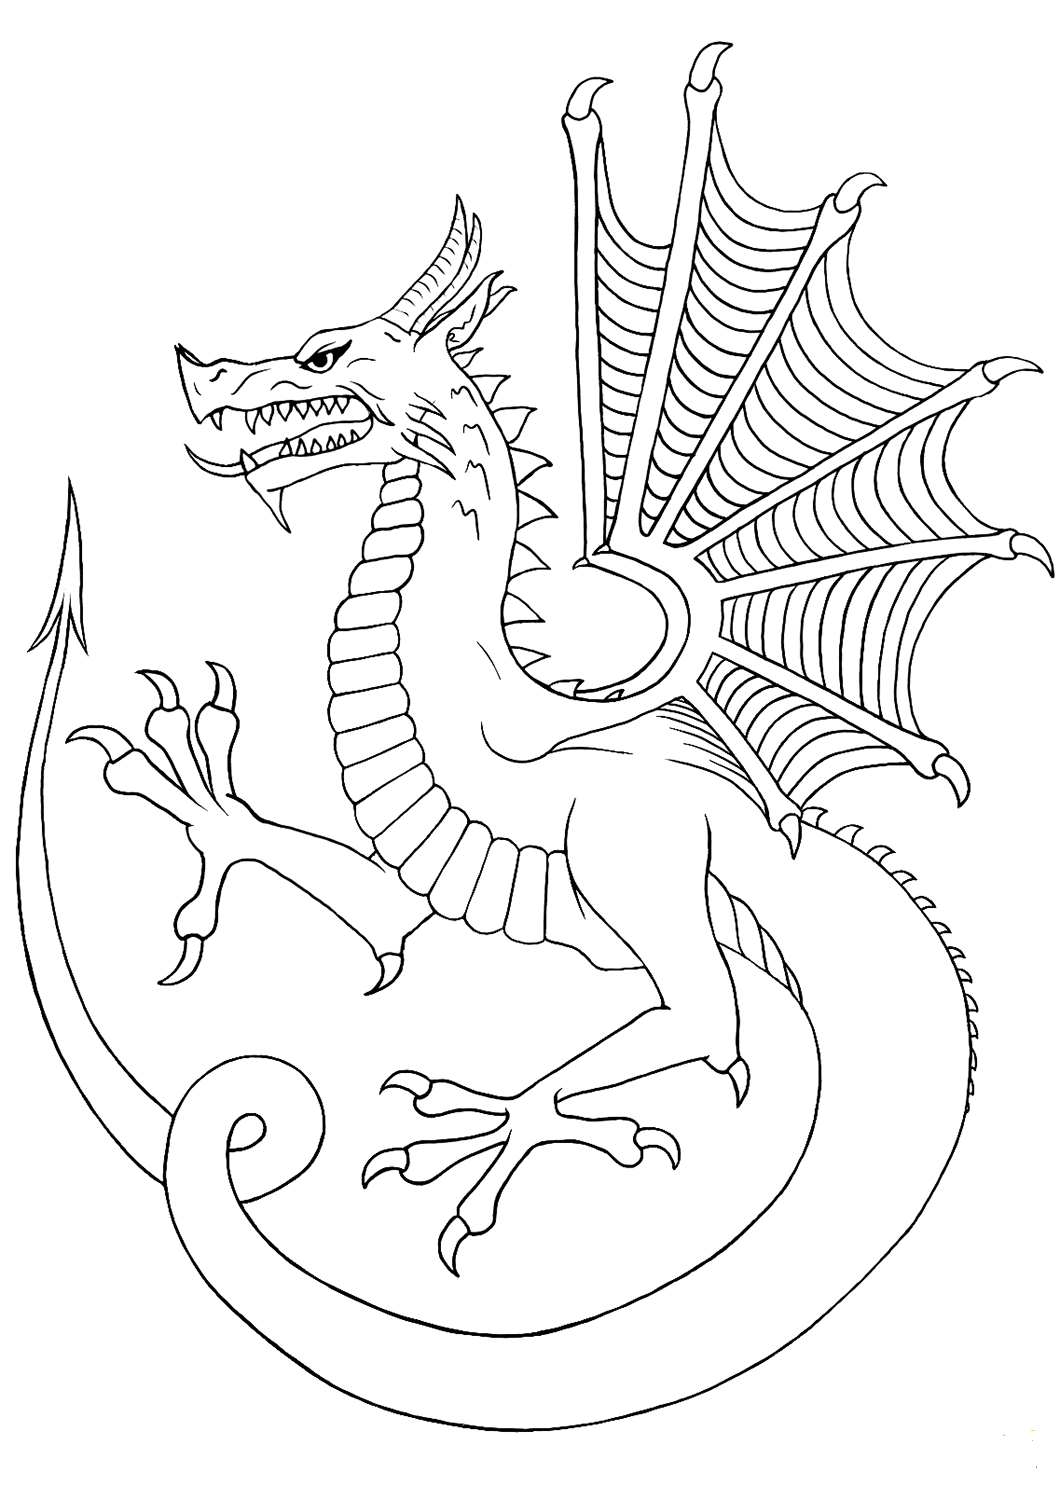 dragon pics to color dragon coloring pages for adults best coloring pages for dragon to color pics